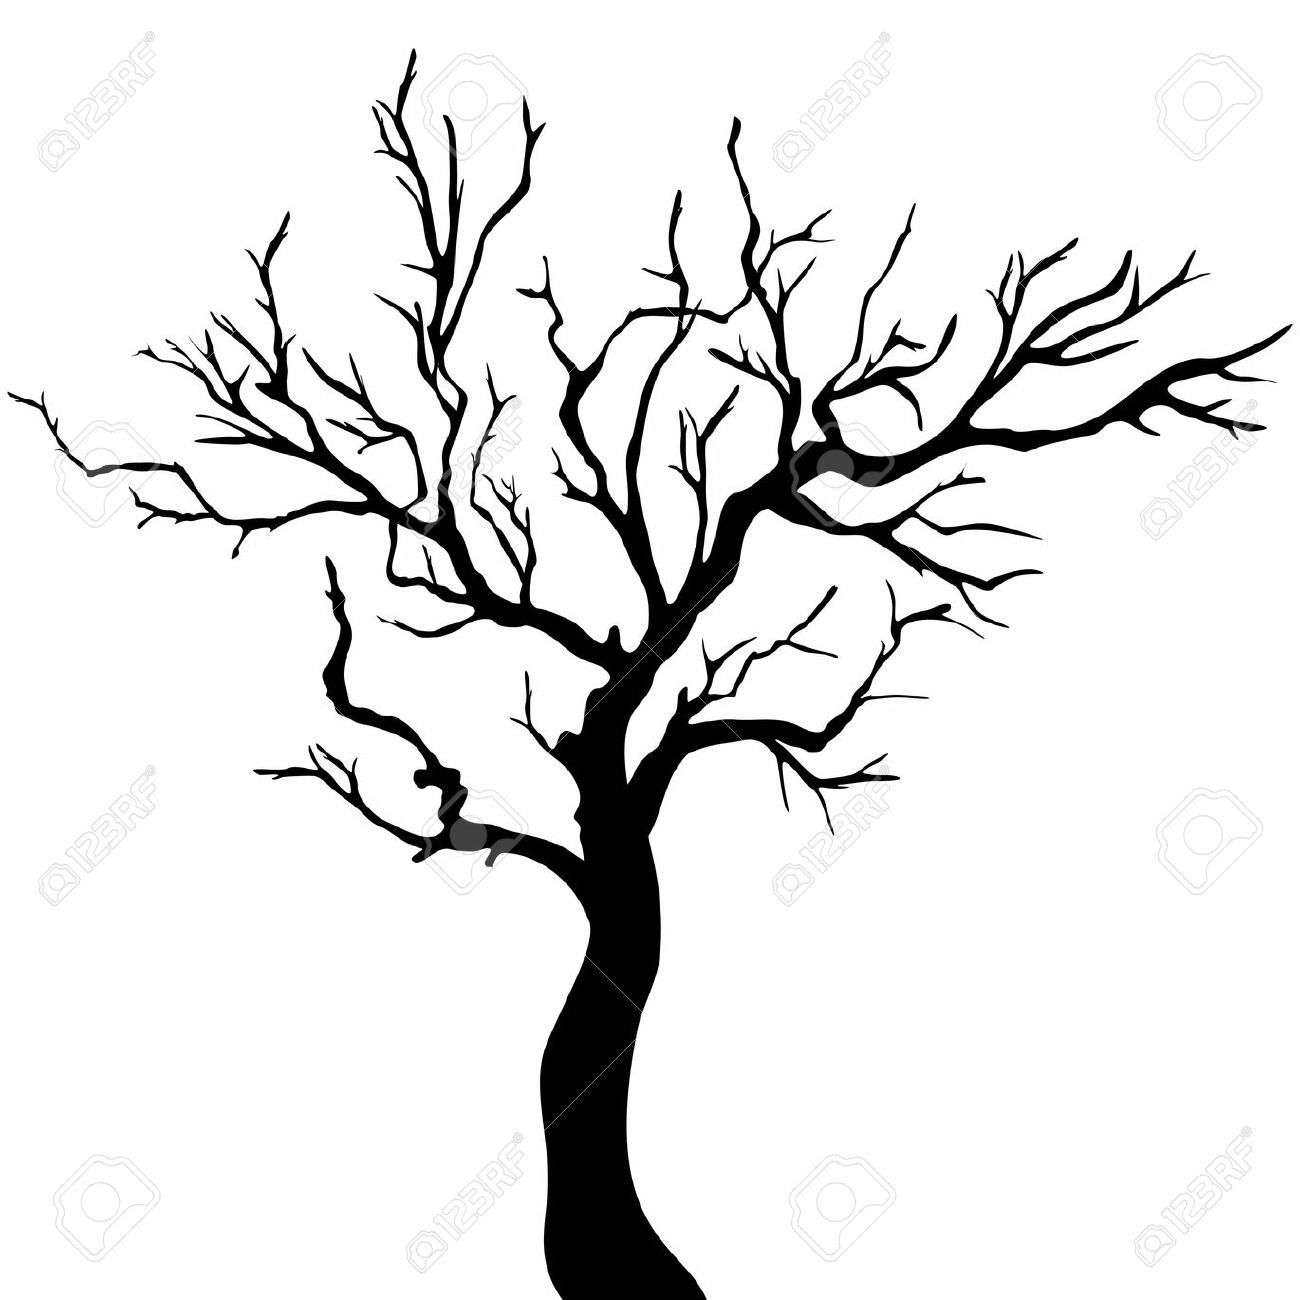 tree silhouettes silhouette art pinterest tree silhouette rh pinterest com Black and White Halloween Clip Art Black and White Halloween Clip Art